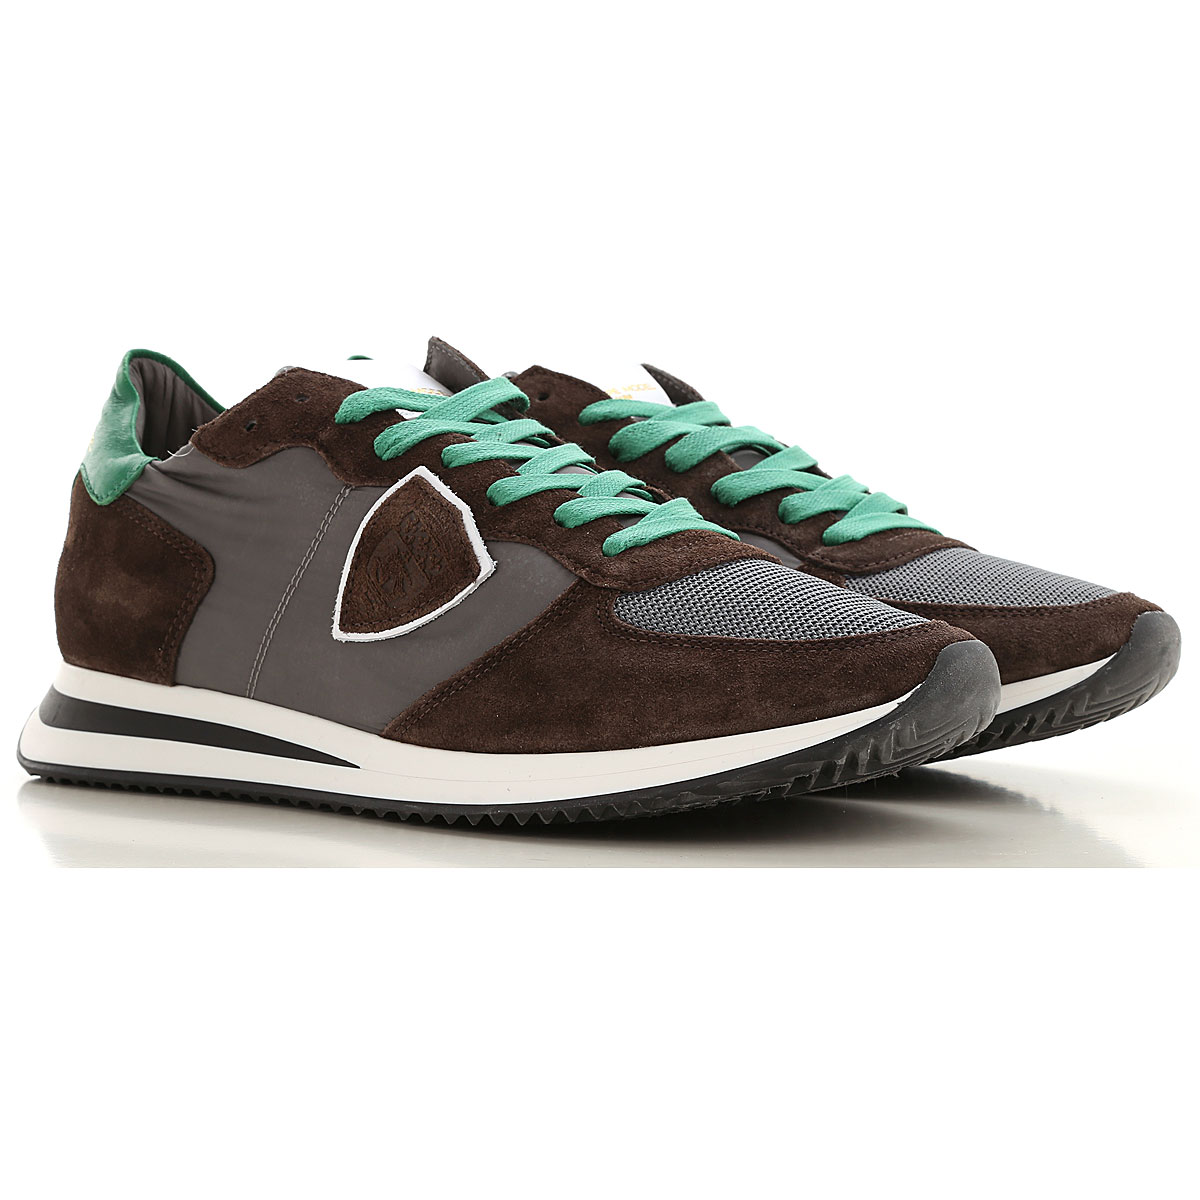 Philippe Model Sneakers for Men On Sale, Brown, Leather, 2019, 10.5 9